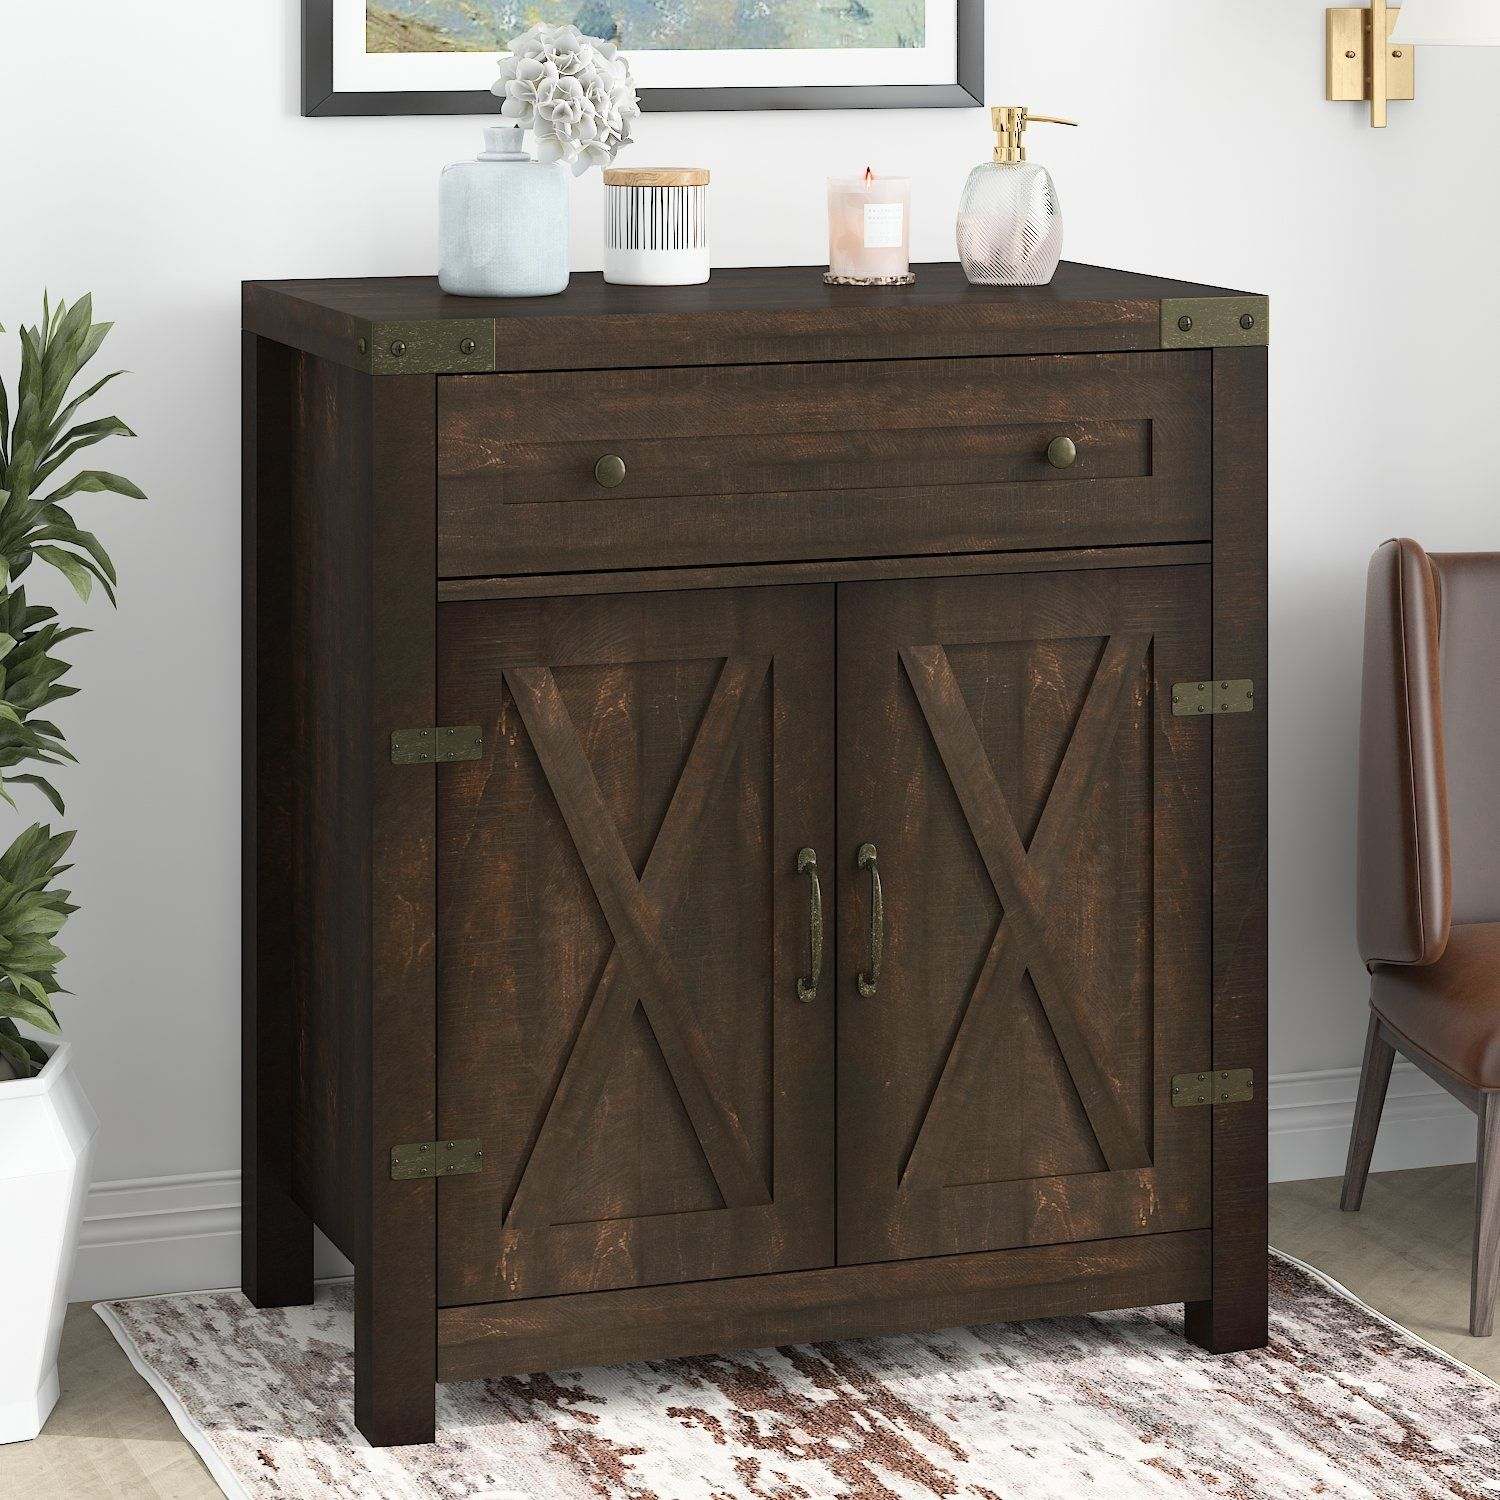 Accent/ Farmhouse Storage Cabinet with Double Doors, Buffet Cabinet, Sideboard with Drawer and 2-Tier Shelves - 32'' / Espresso